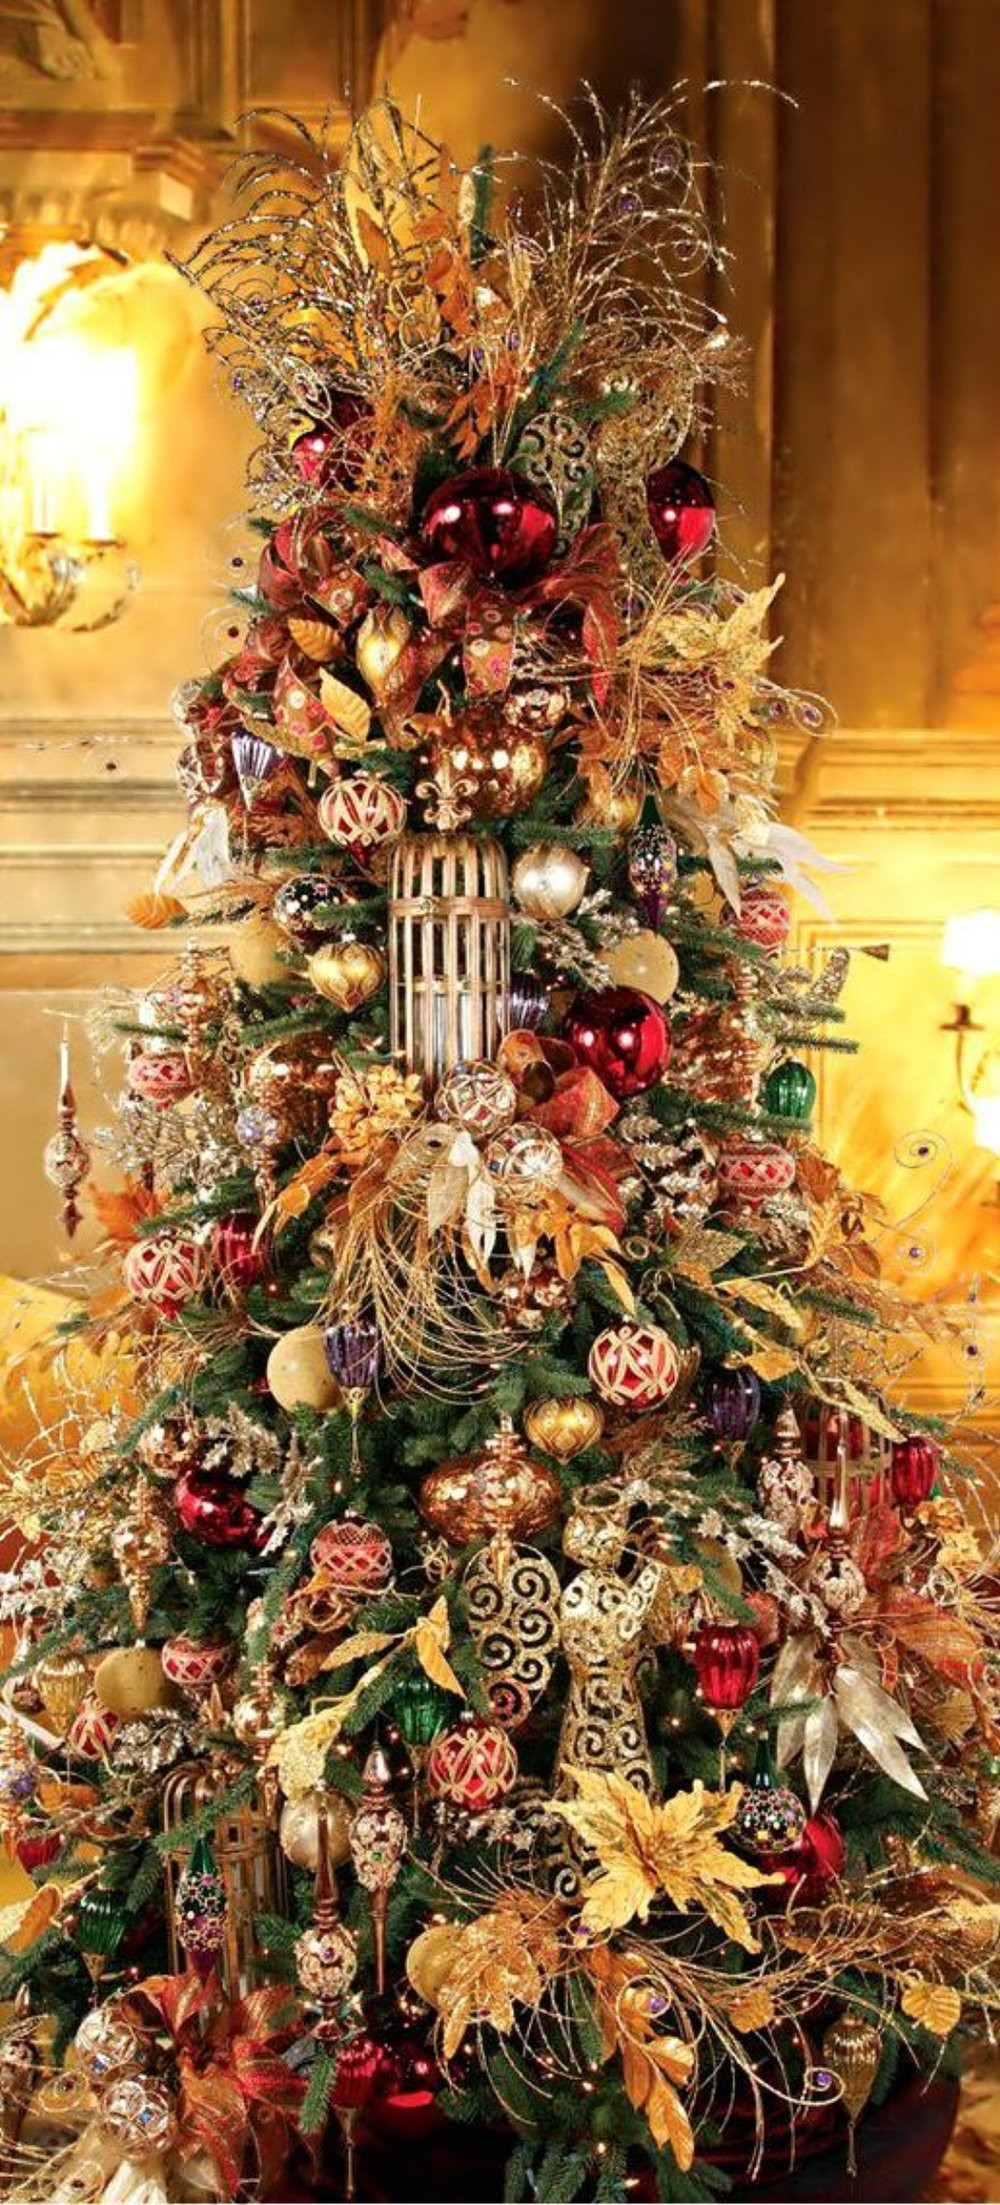 Christmas Decorators New 20 Awesome Christmas Tree Decorating Ideas & Inspirations Of Christmas Decorators New 46 Beautiful Christmas Porch Decorating Ideas — Style Estate